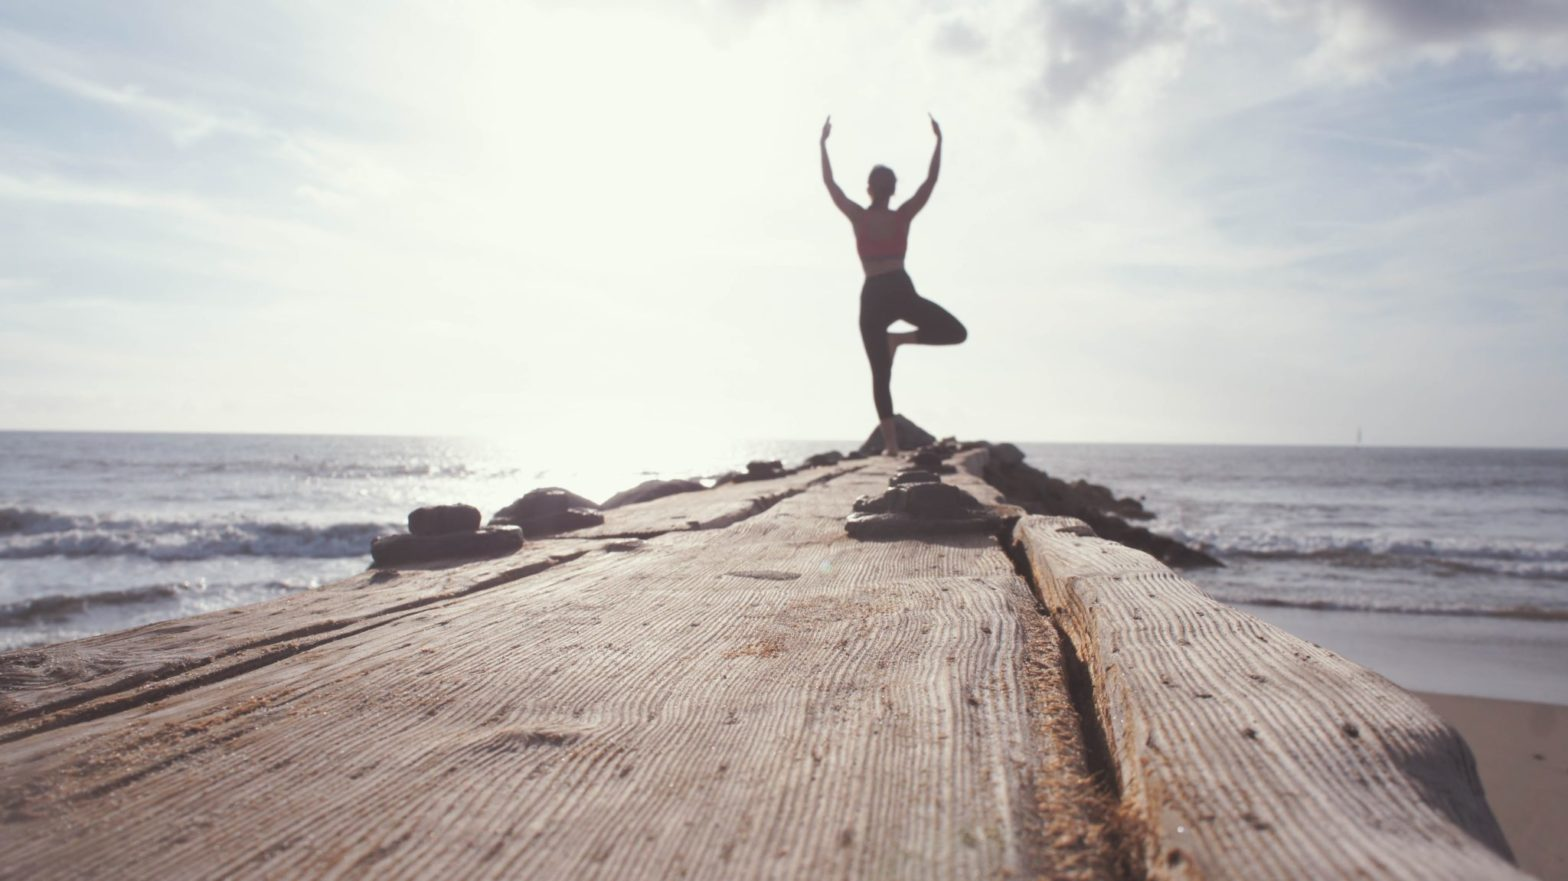 woman-standing-yoga-position-sea-infront-of-her